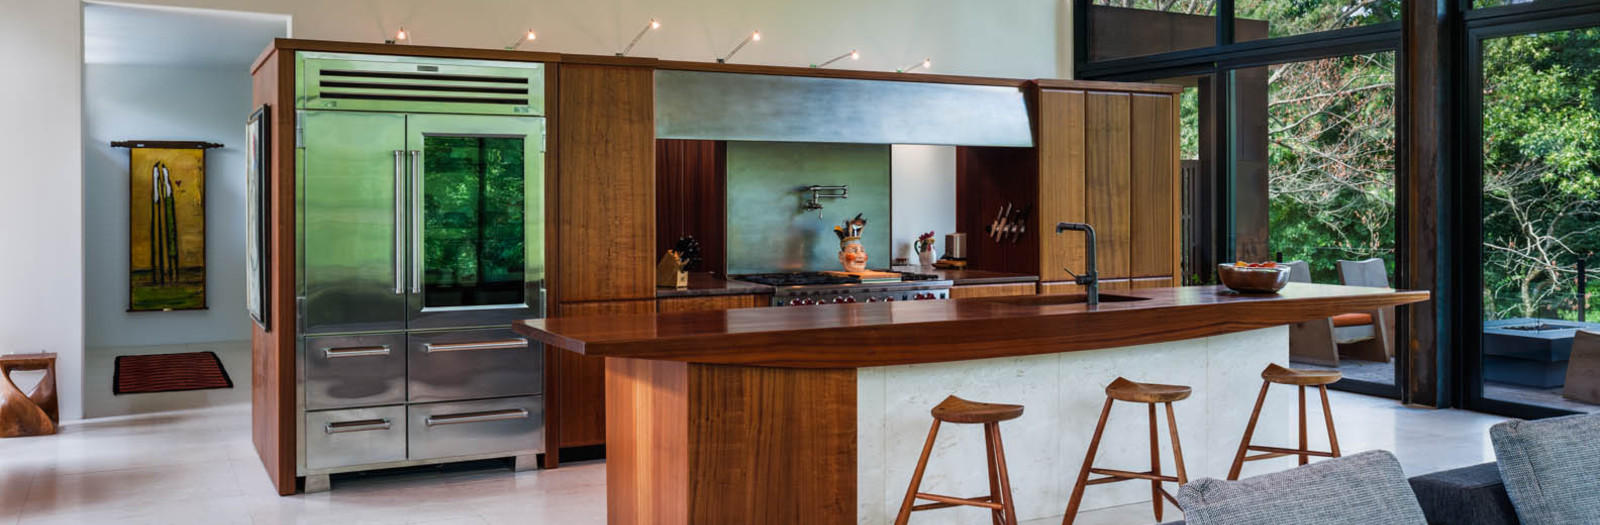 Modern Kitchen with brushed metal bridge and hood